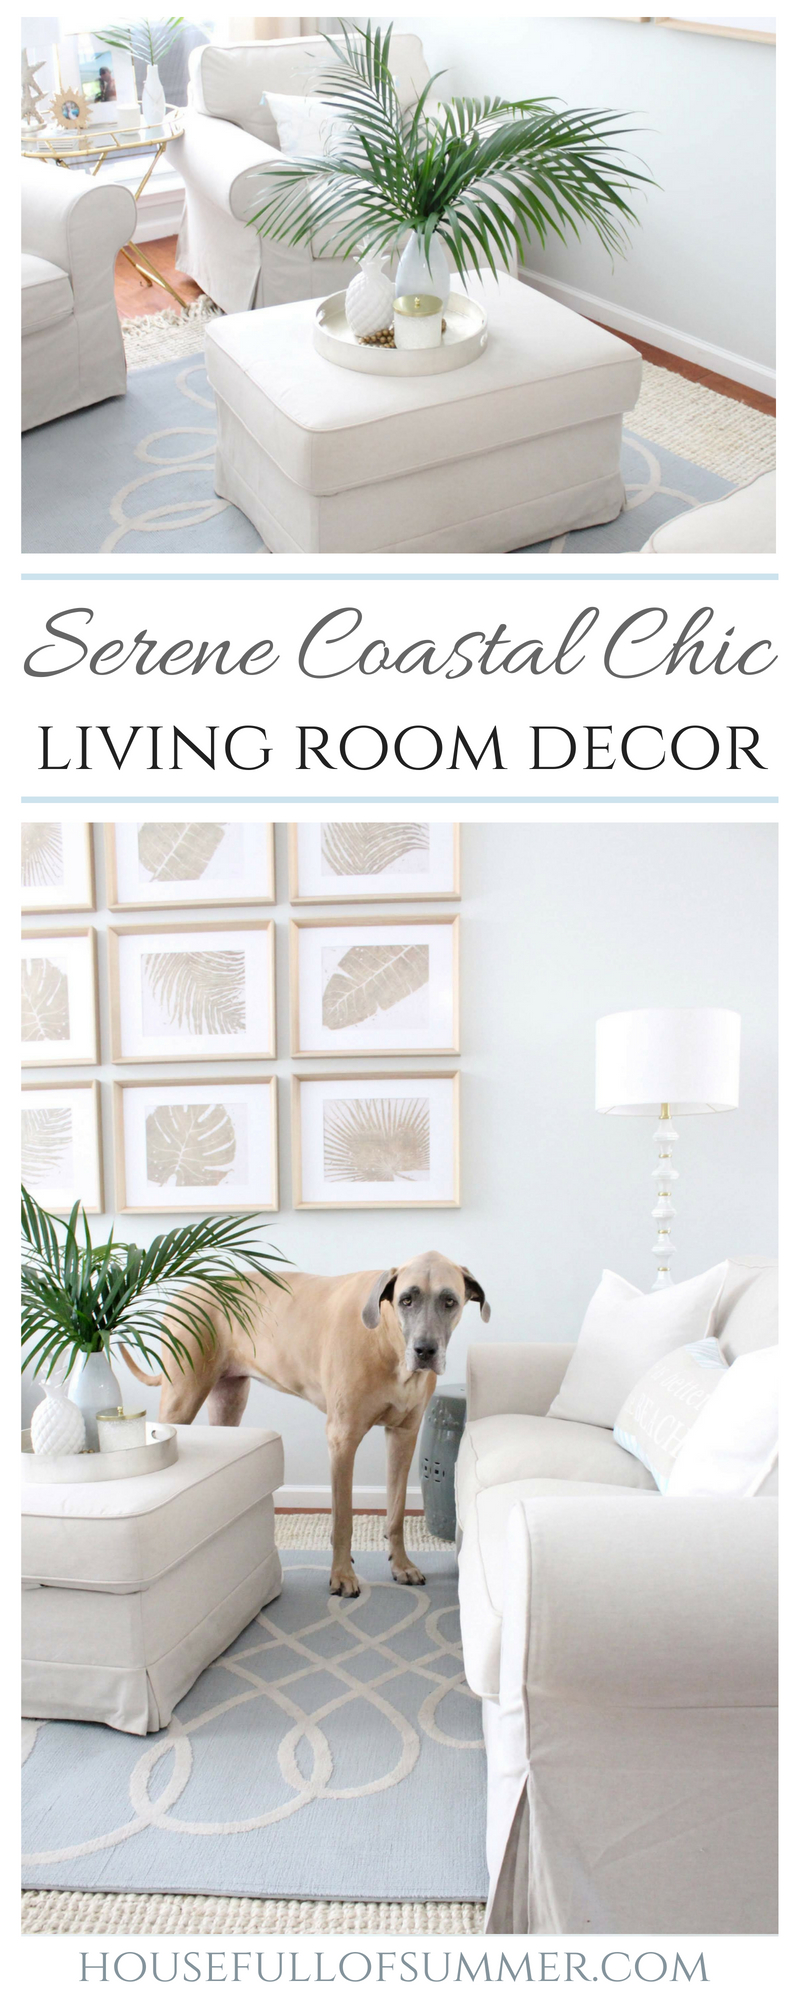 Serene Coastal Chic Living Room Decor | House Full Of Summer Coastal Home  Interior, Palm